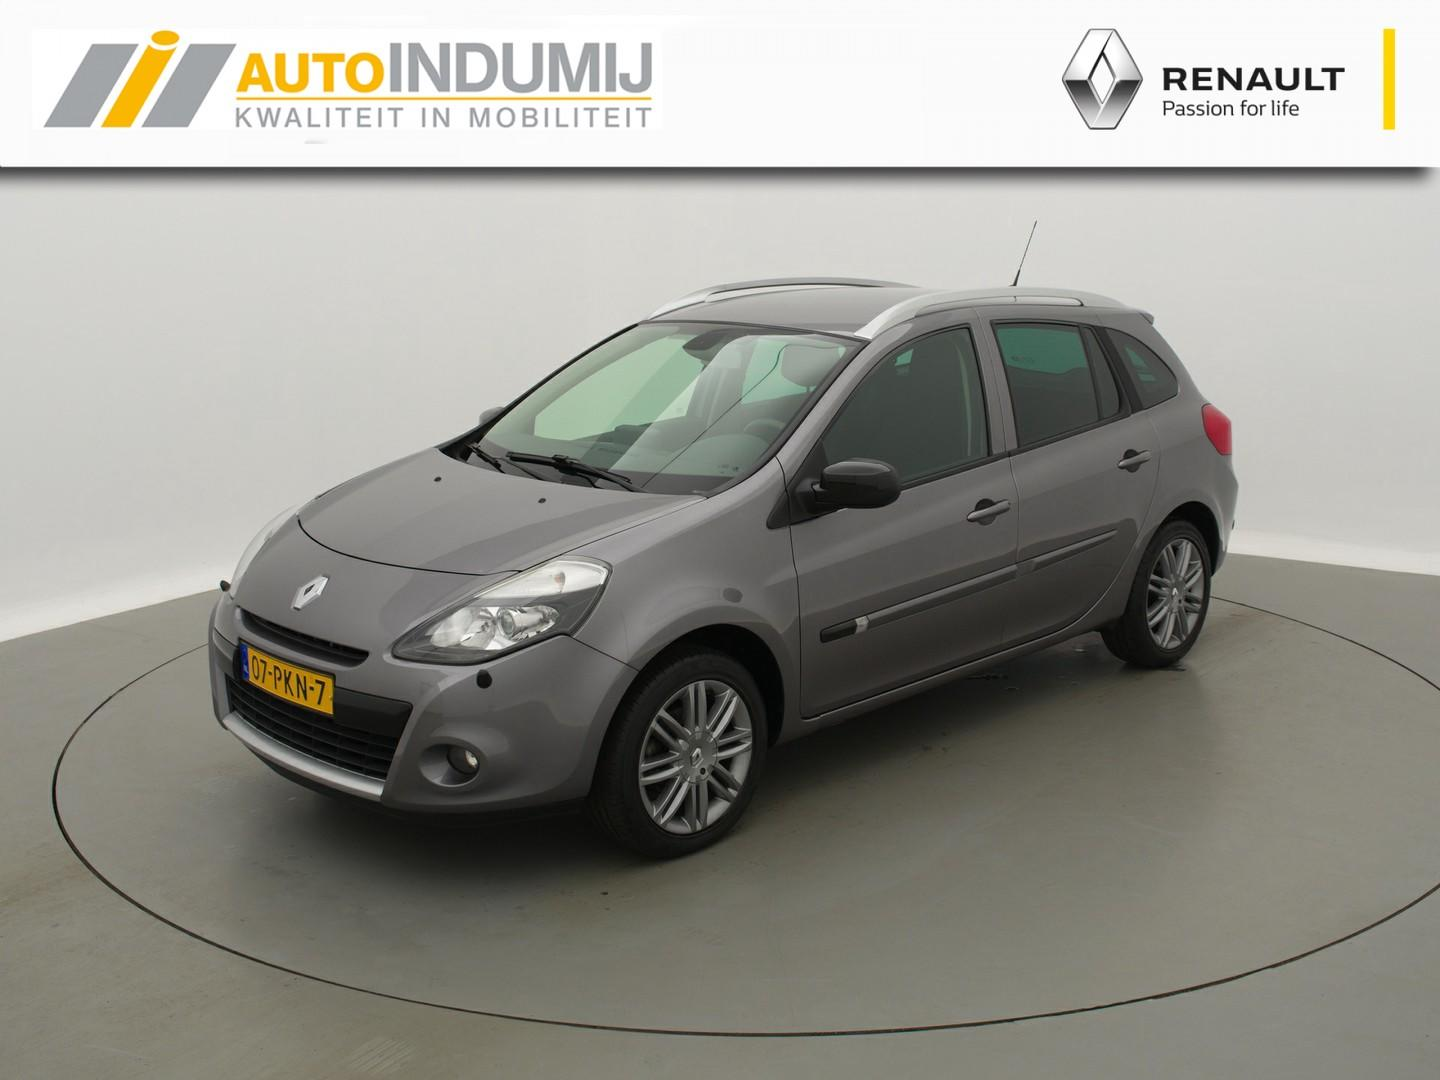 Renault Clio Estate tce 100 20th anniversary + trekhaak / climate control / armsteun